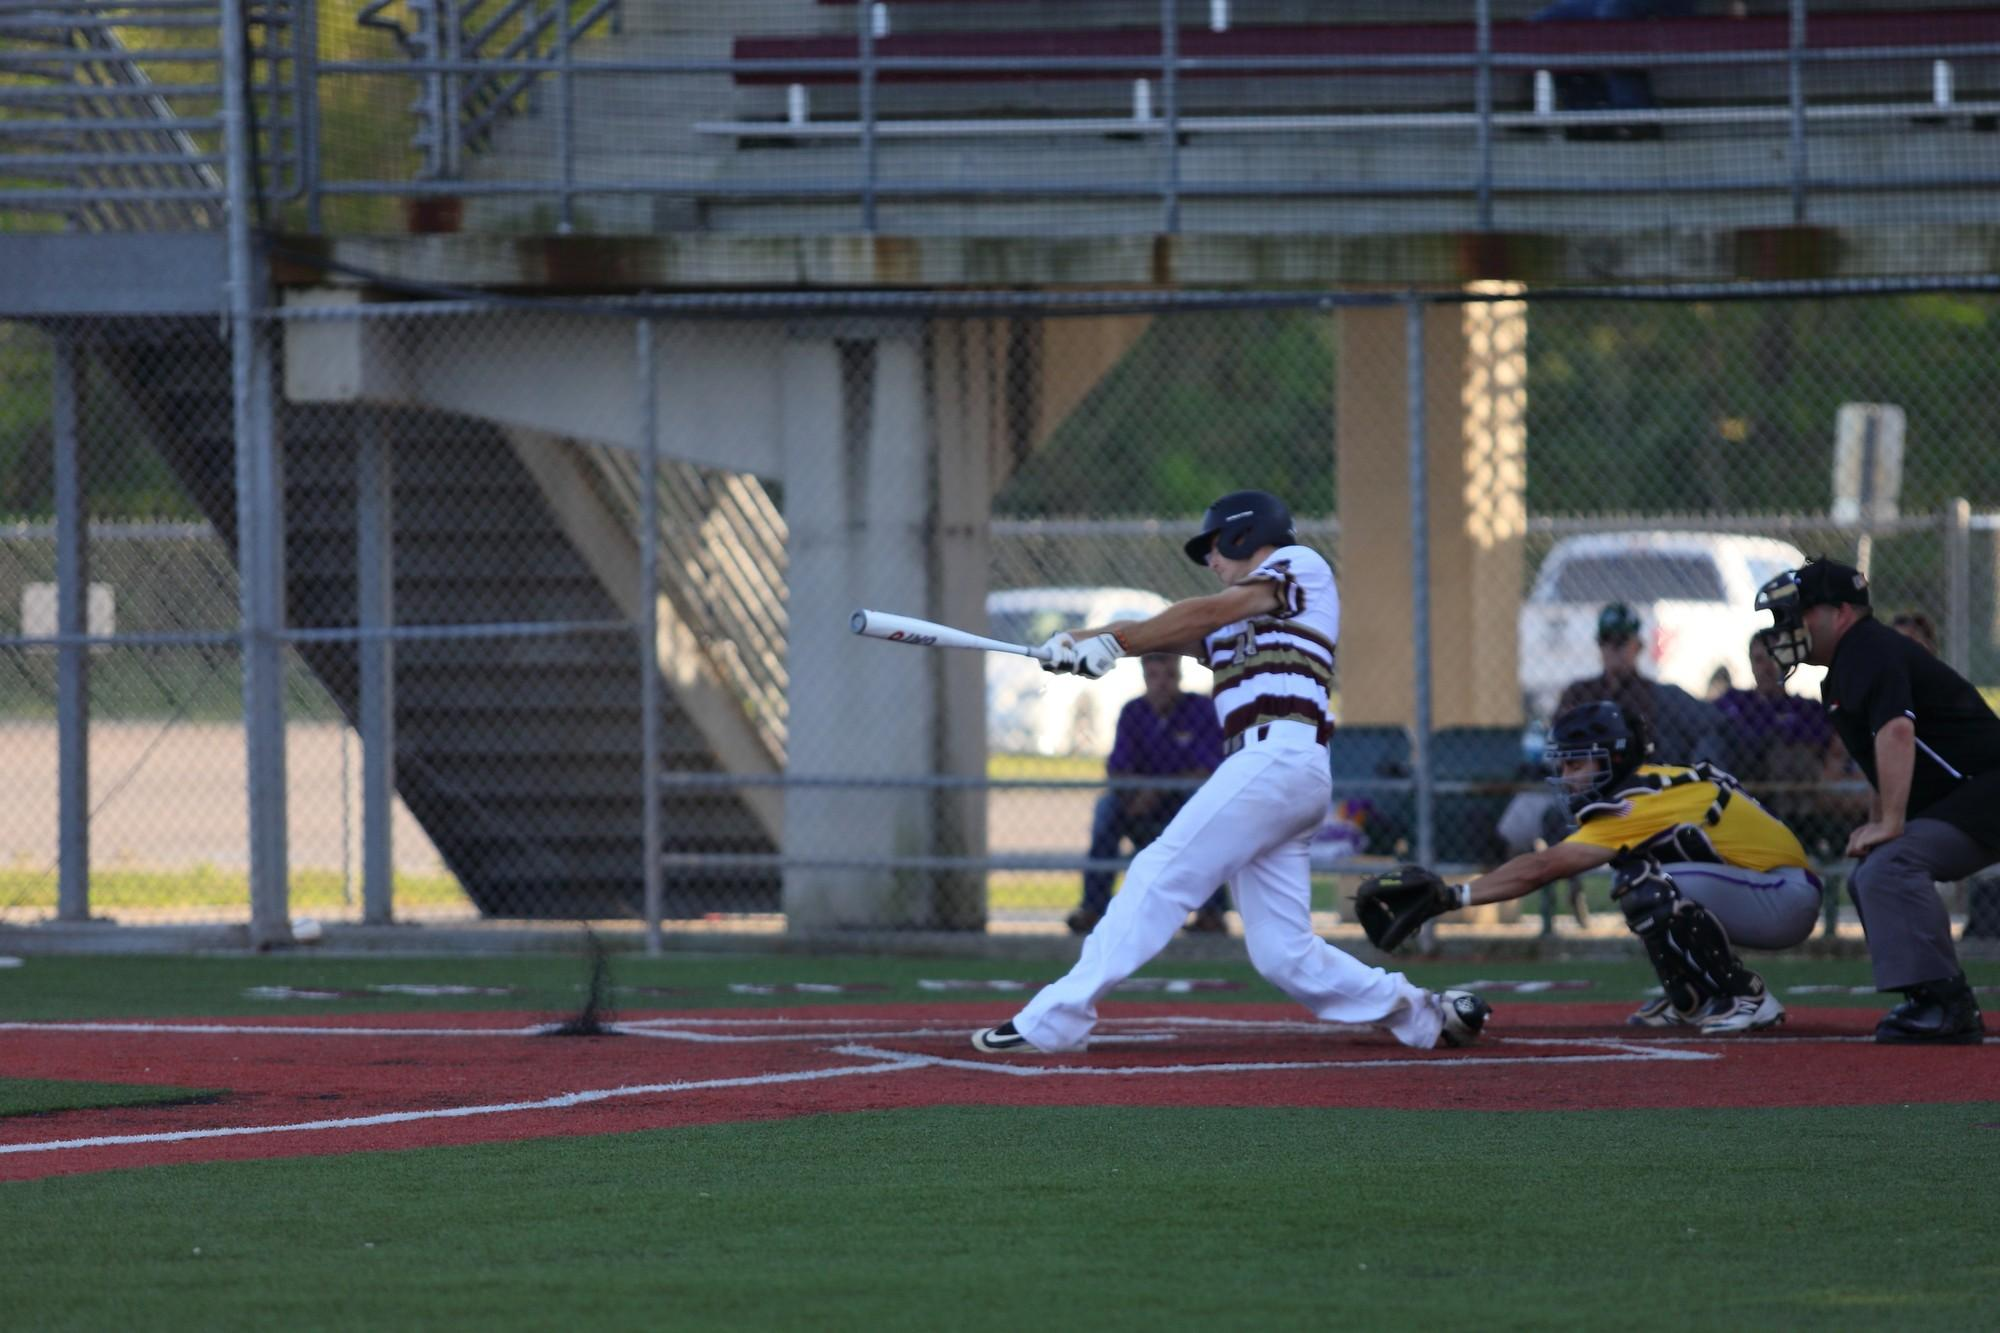 General studies junior Ben Condara up to bat during tuesday's game against Louisiana State University-Alexandria. The wolfpack is set to play Blue Mountain College this friday March 24th 2017. Photo credit: Marisabel Rodriguez